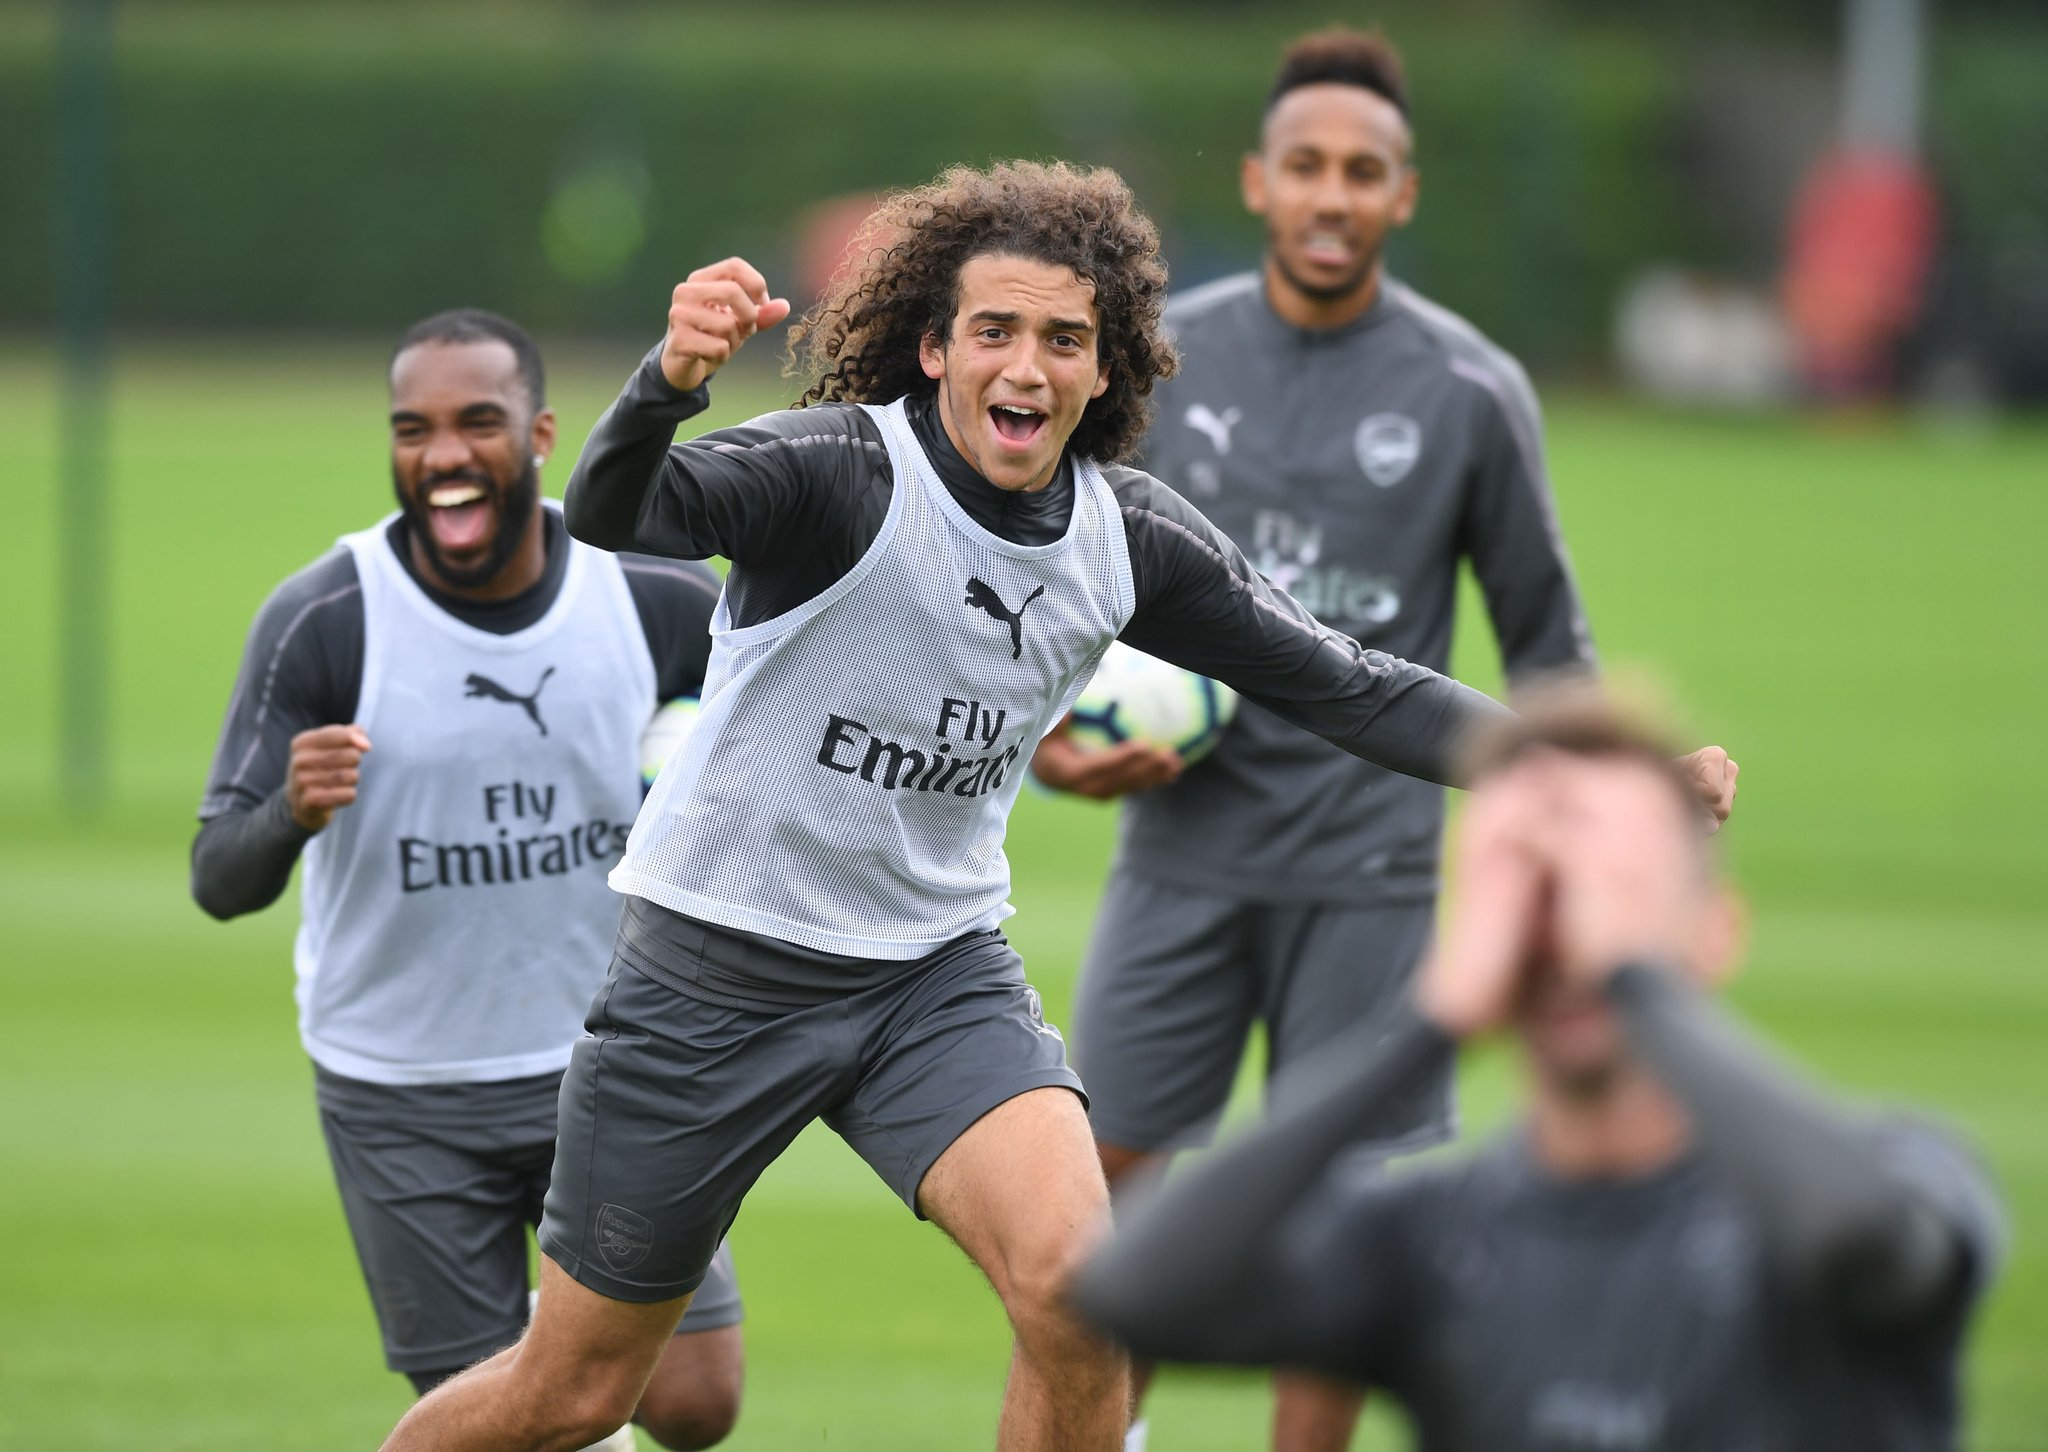 Matteo Guendouzi celebrating